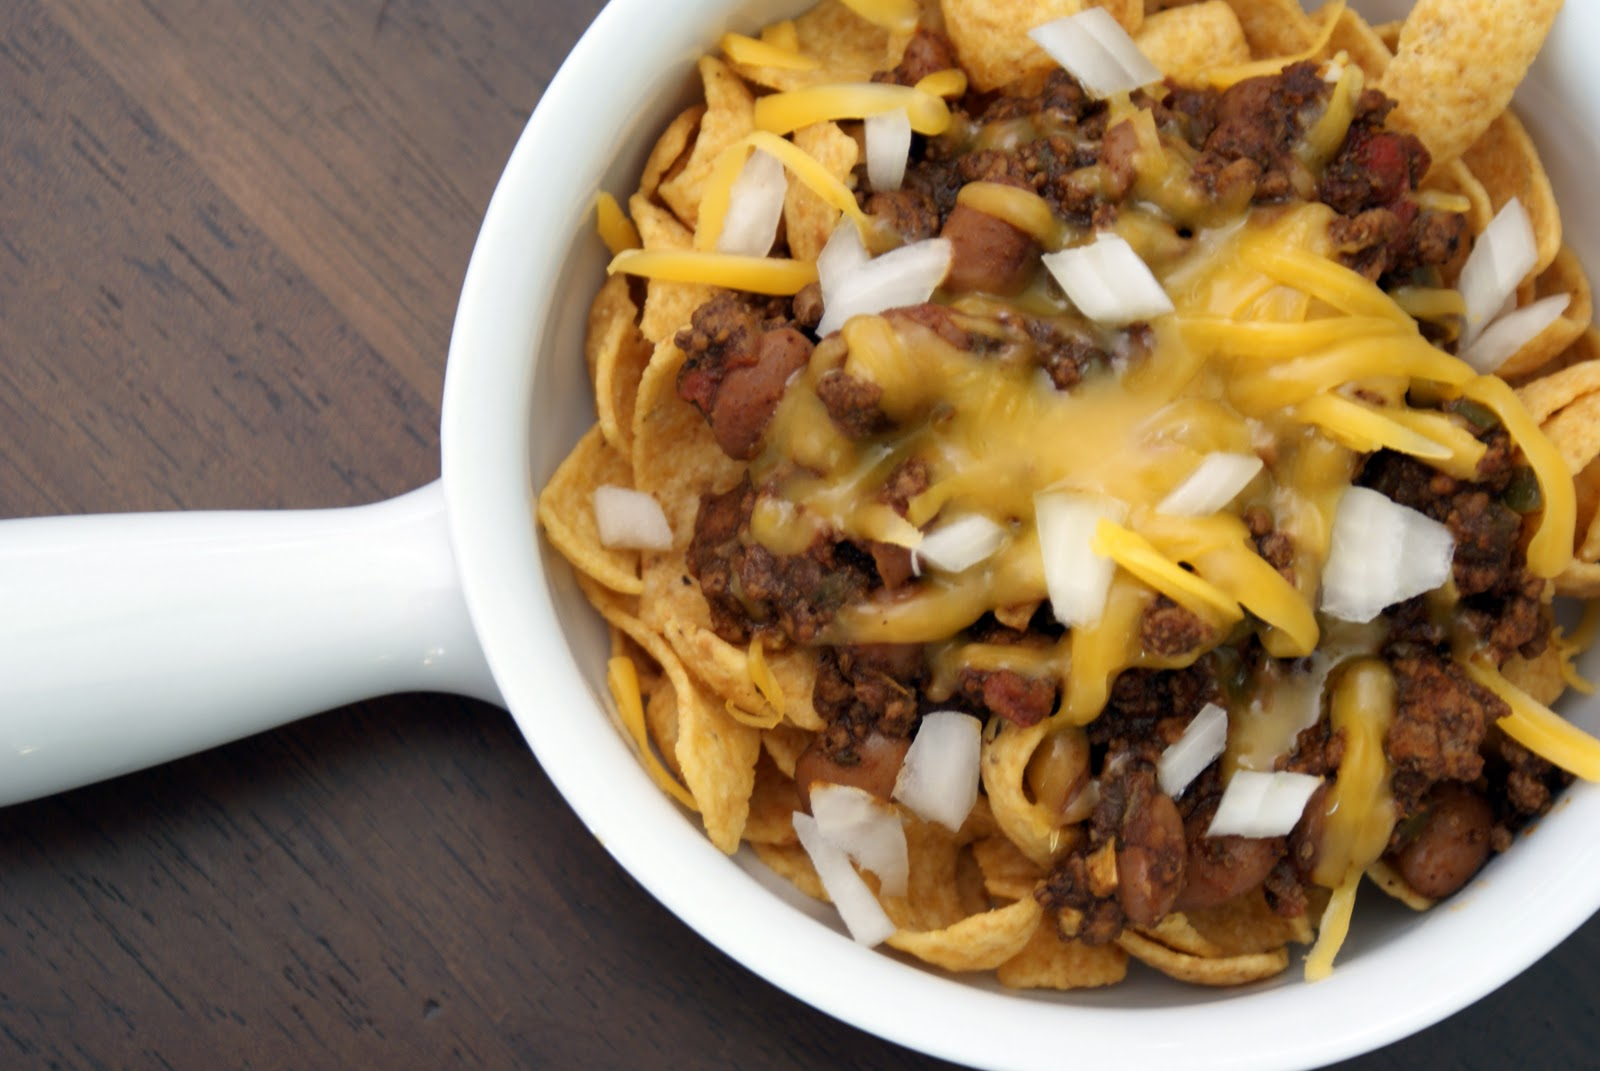 The classic Frito pie is this: a single-serving bag of Fritos, opened ...